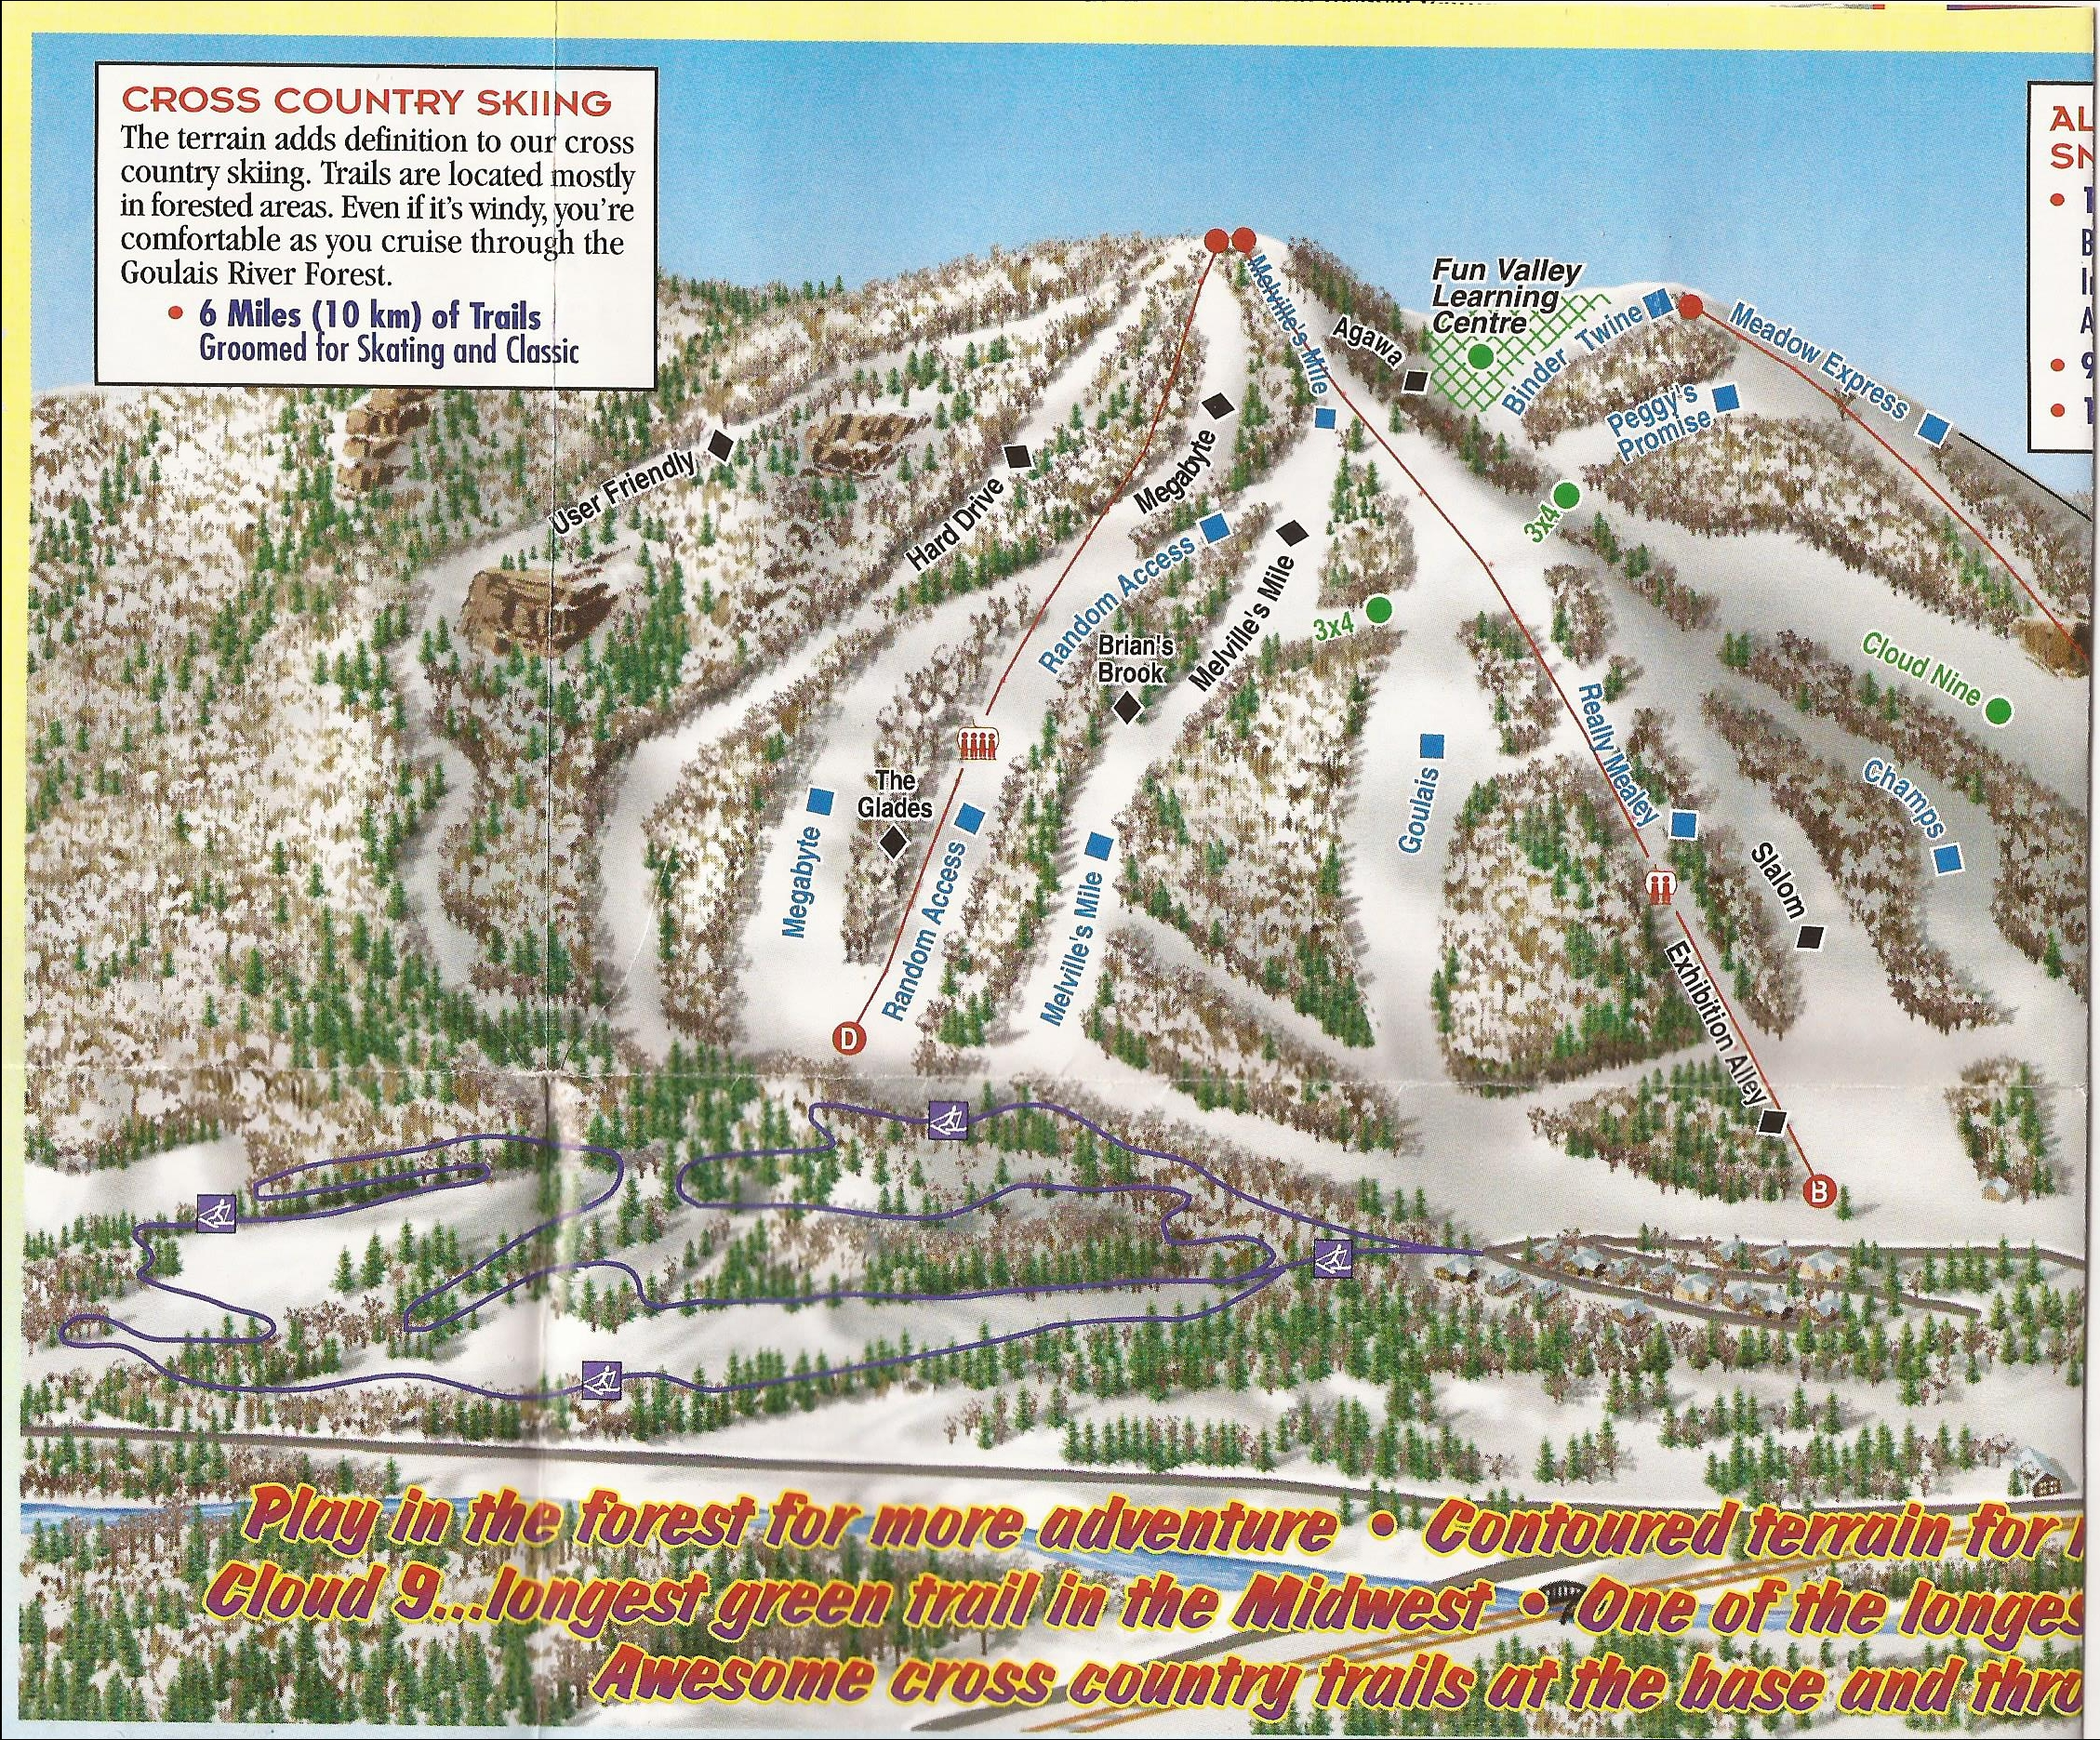 Searchmont Resort - SkiMap.org on change a map, definition of an essay, definition of photograph, definition of illustrations, definition of an array, definition of compass, definition of fire, elements in a map, definition of an ellipse, definition of money, definition of food, definition of knife, definition of plan, definition of services, definition of blankets, definition of whistle, definition of transportation, definition of time line, definition of table, definition of camera,